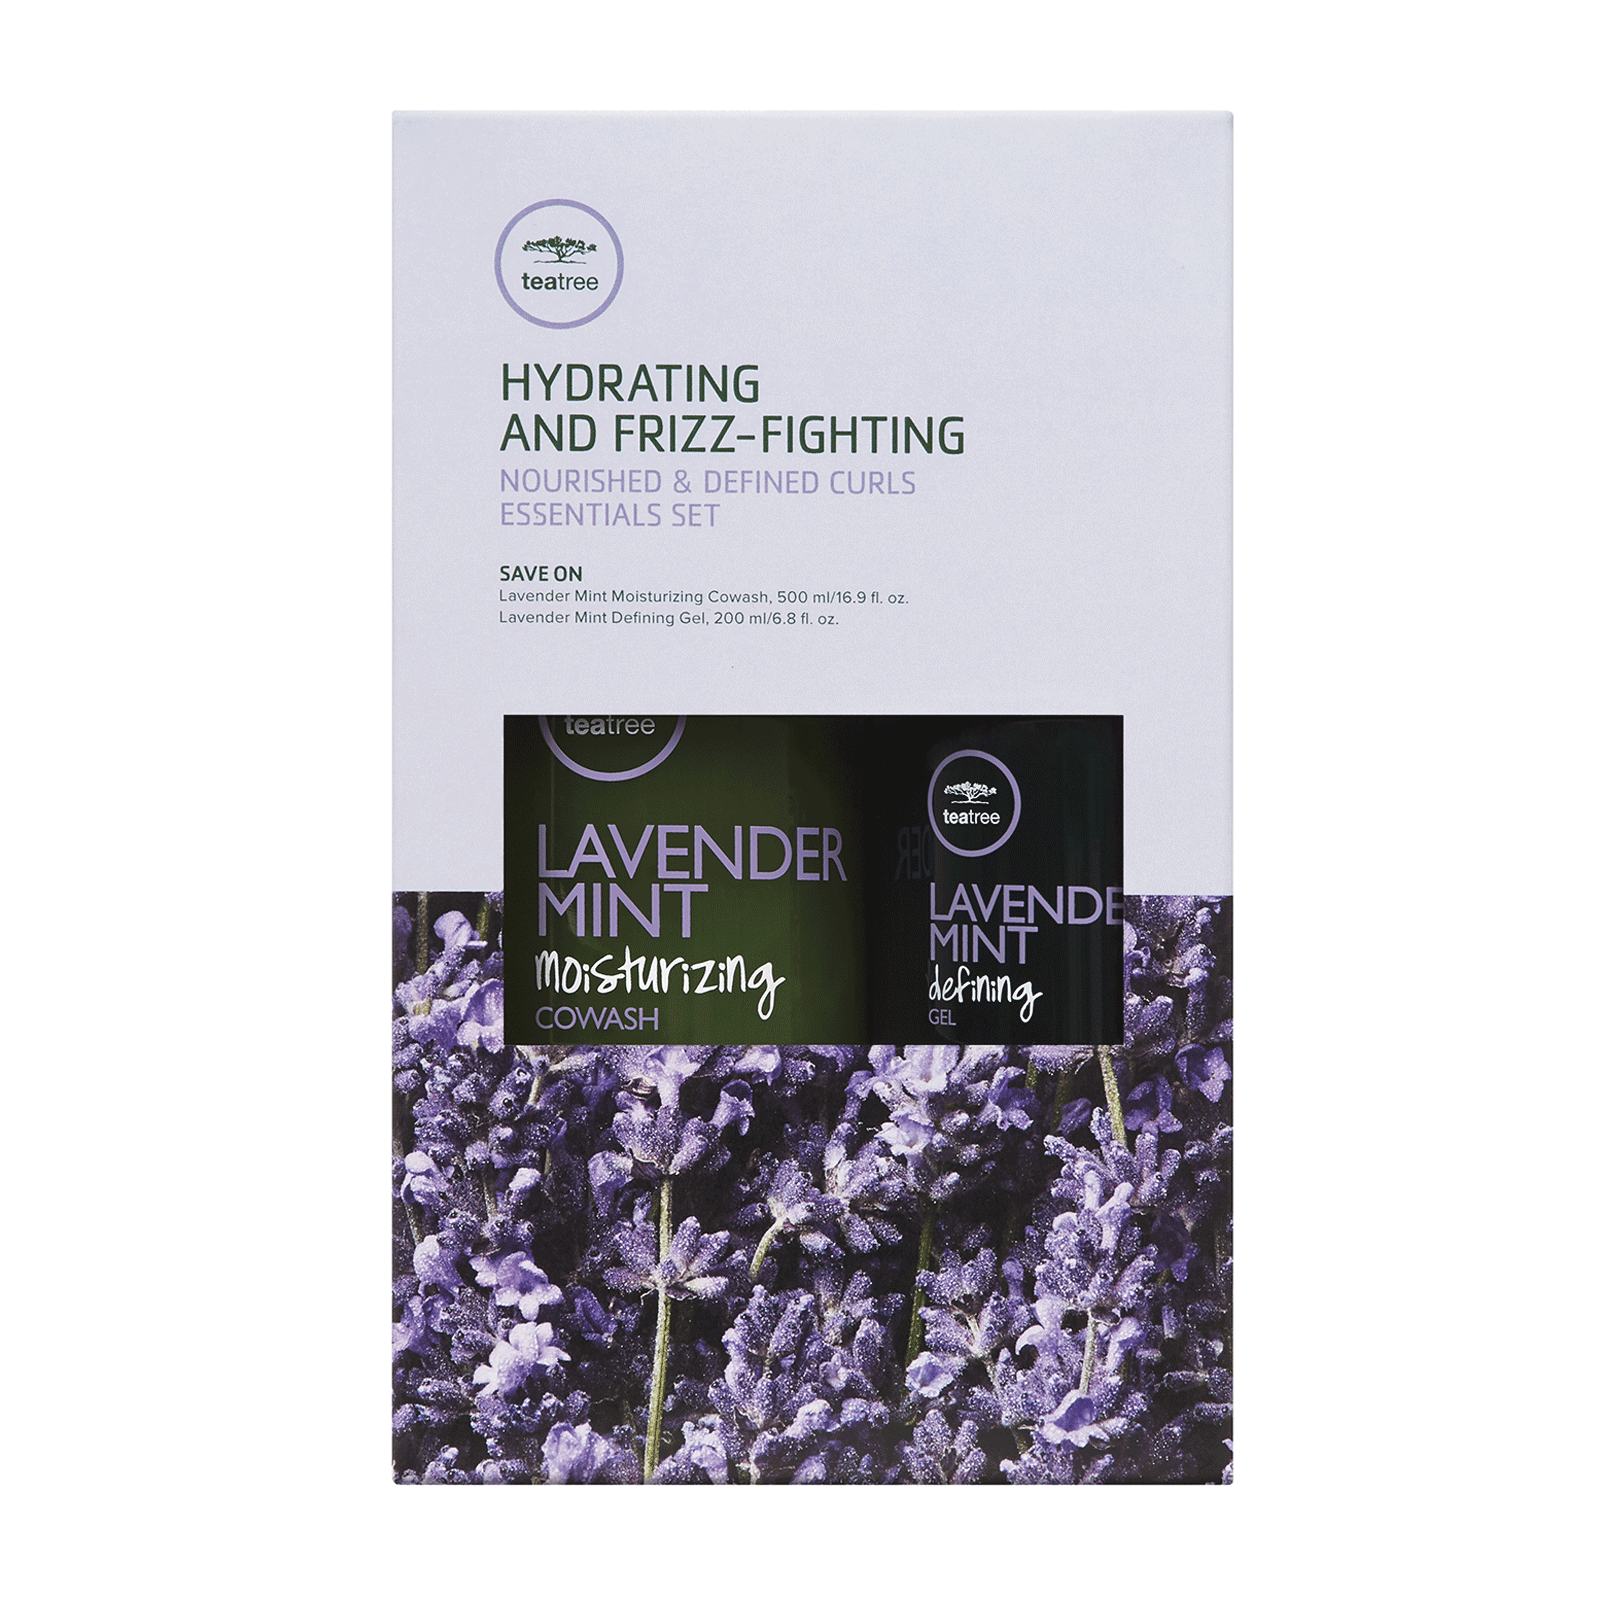 Tea Tree Lavender Mint Defining Gel, CoWash